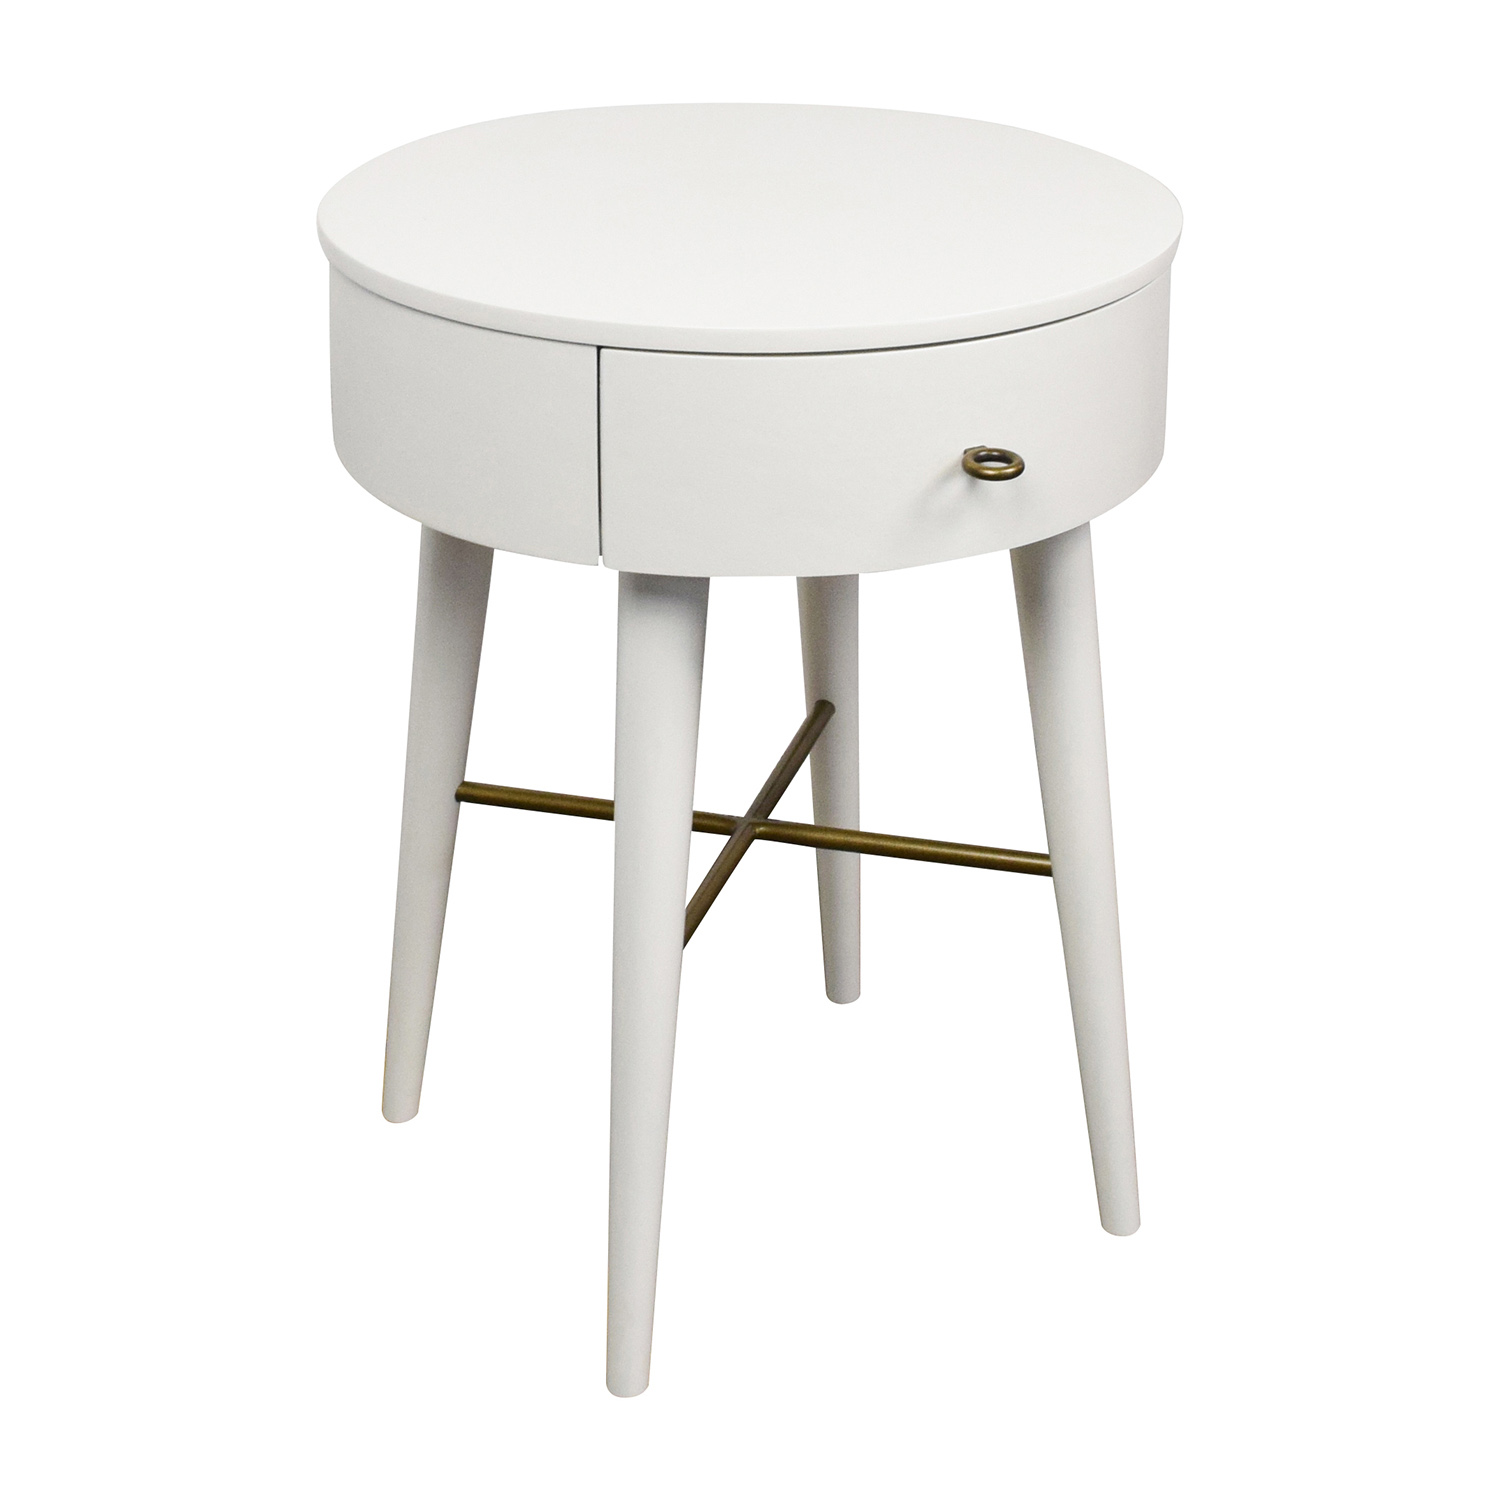 West Elm Penelope White Round Nightstand Dimensions